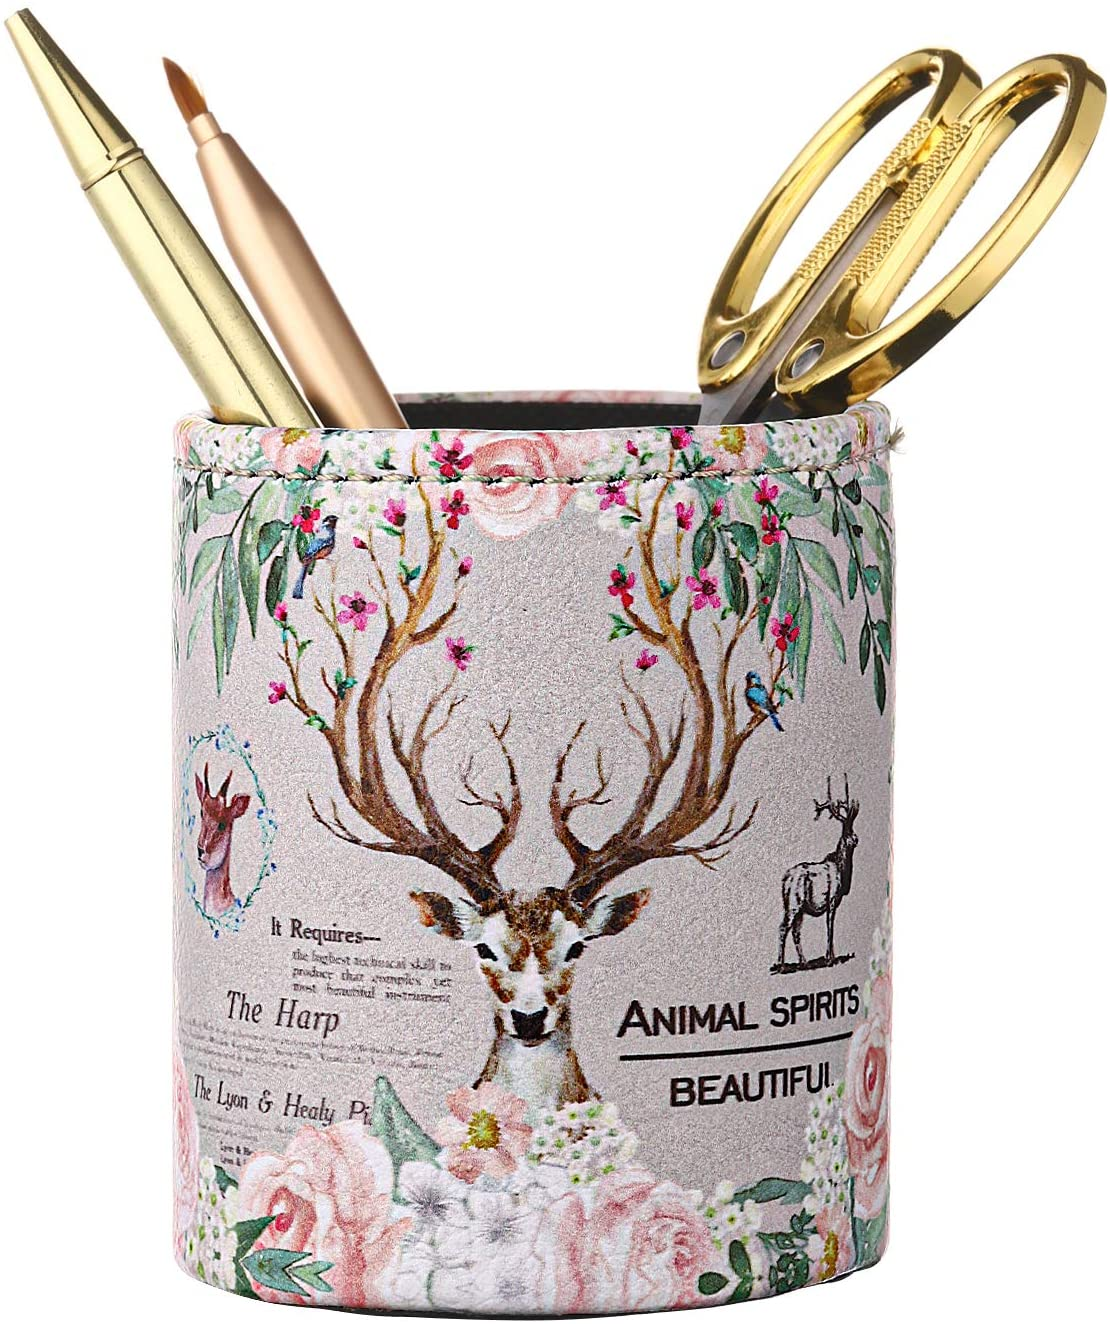 Onlyesh Pencil Holder for Desk, PU Leather Pen Cup Makeup Brush Holder, Big Capacity Pencil Organizer for Office School Home, Ideal Gifts for Girls Kids Women - Deer